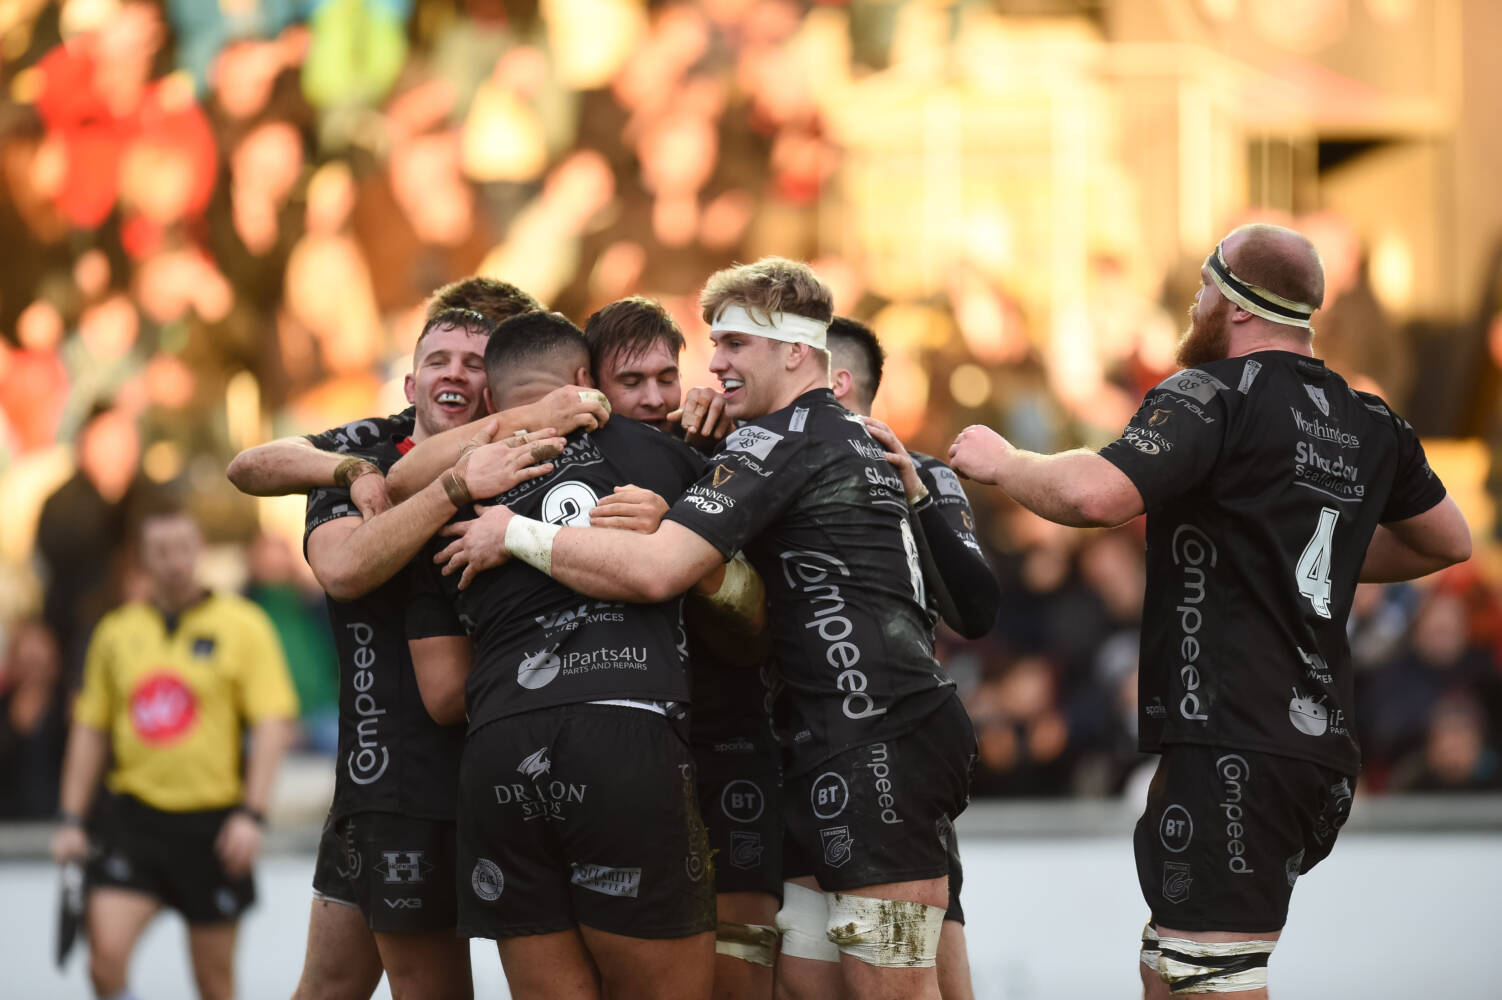 Dragons in good place for Castres challenge